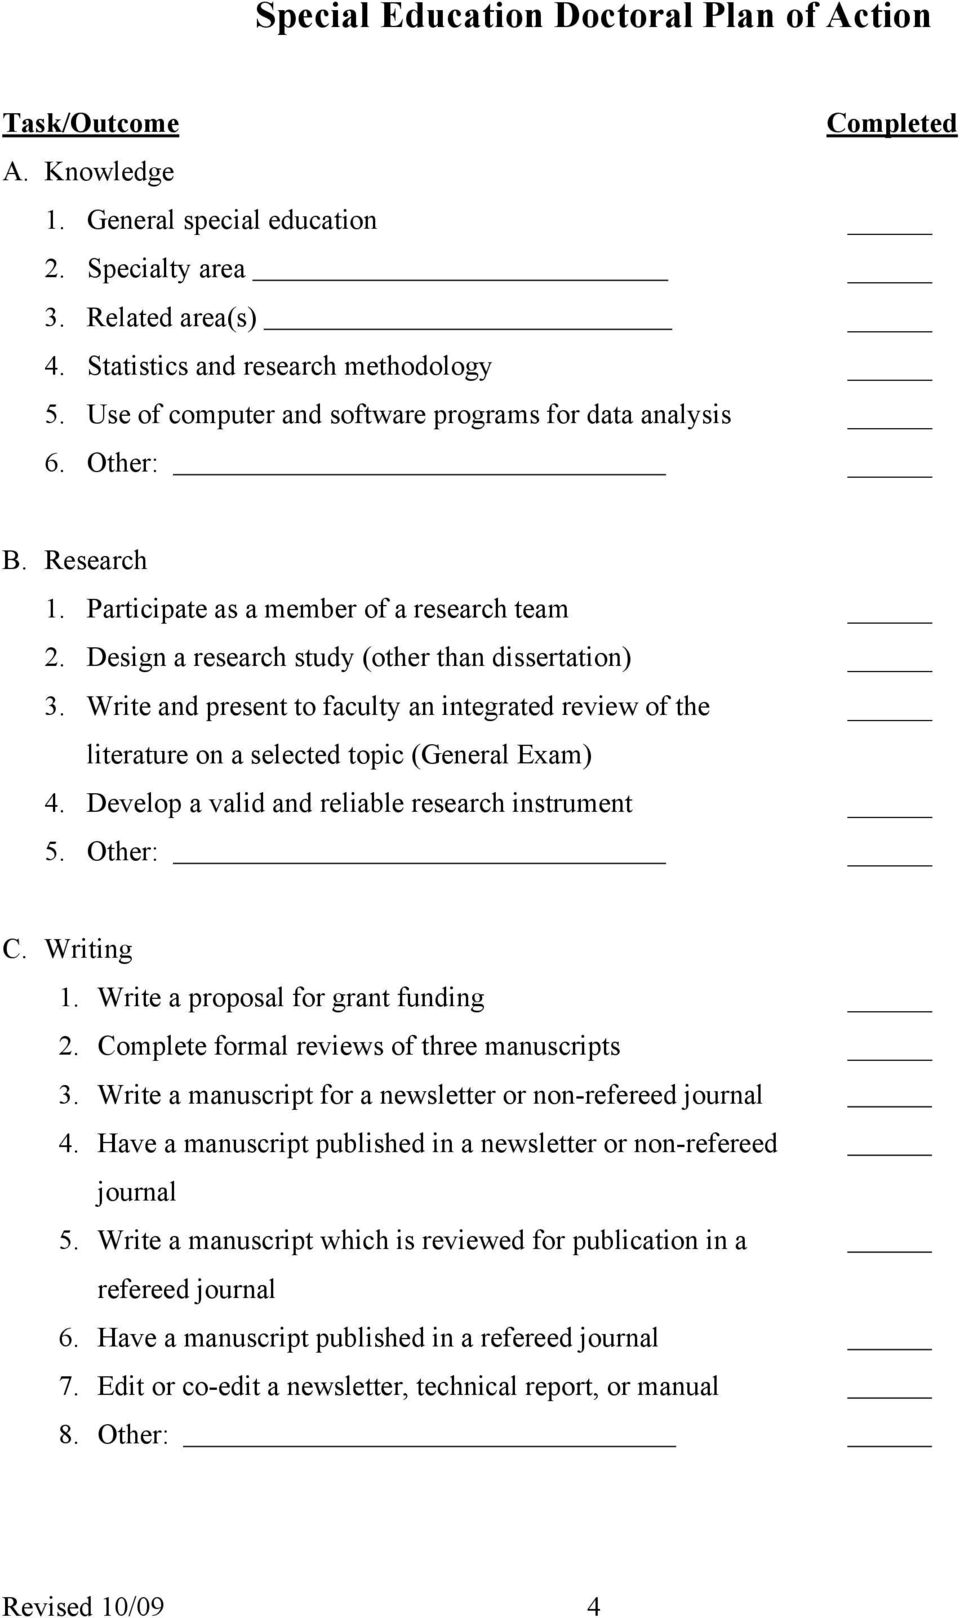 Custom thesis writing service help